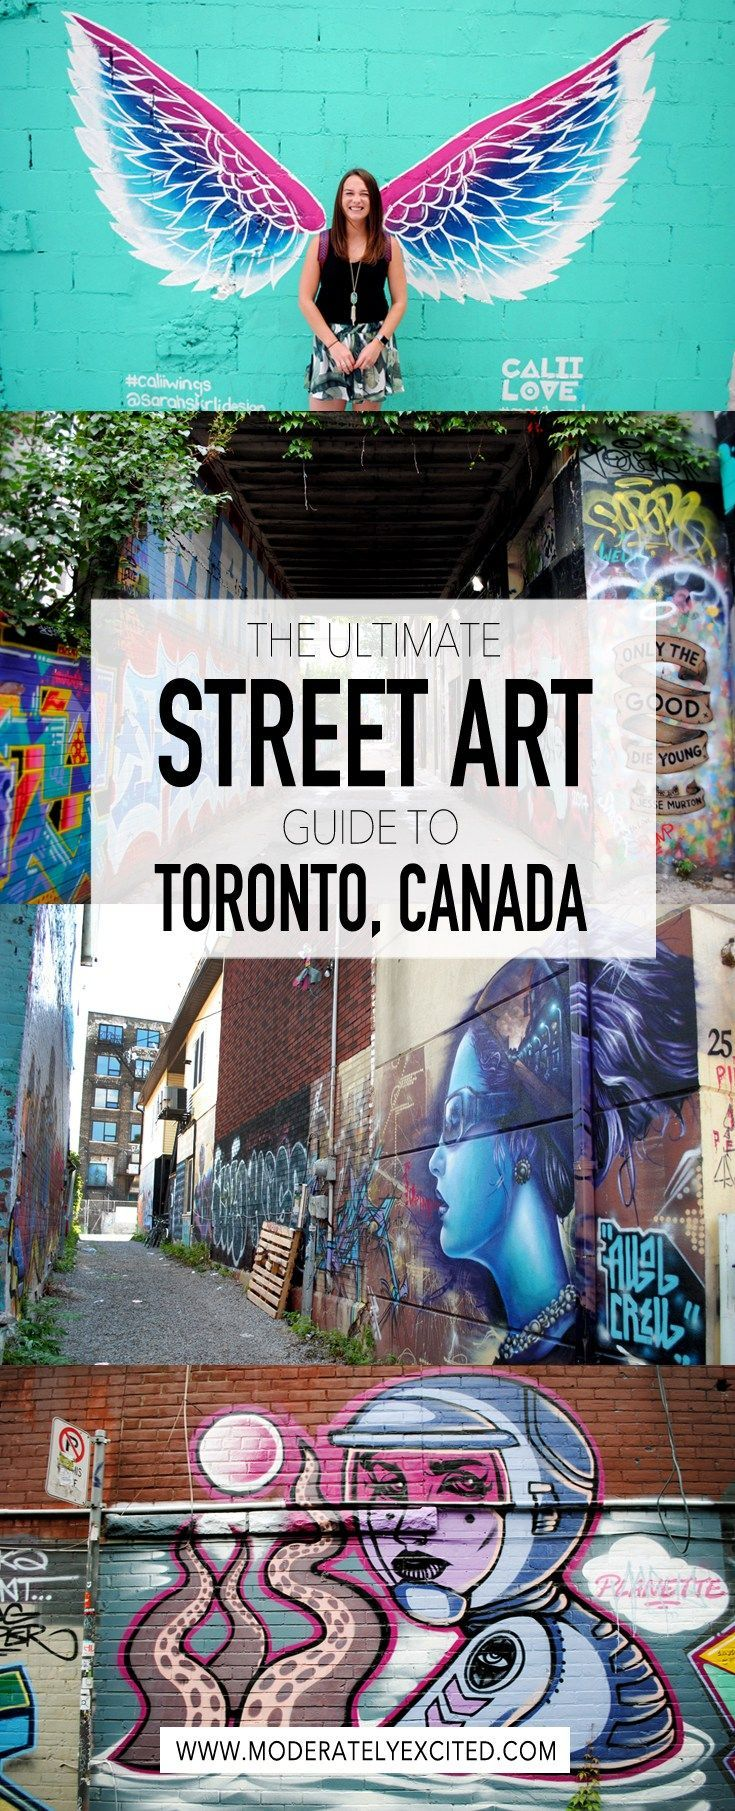 Toronto, Eh? The Moderately Exciting Guide to 48 Hours in Toronto, Canada